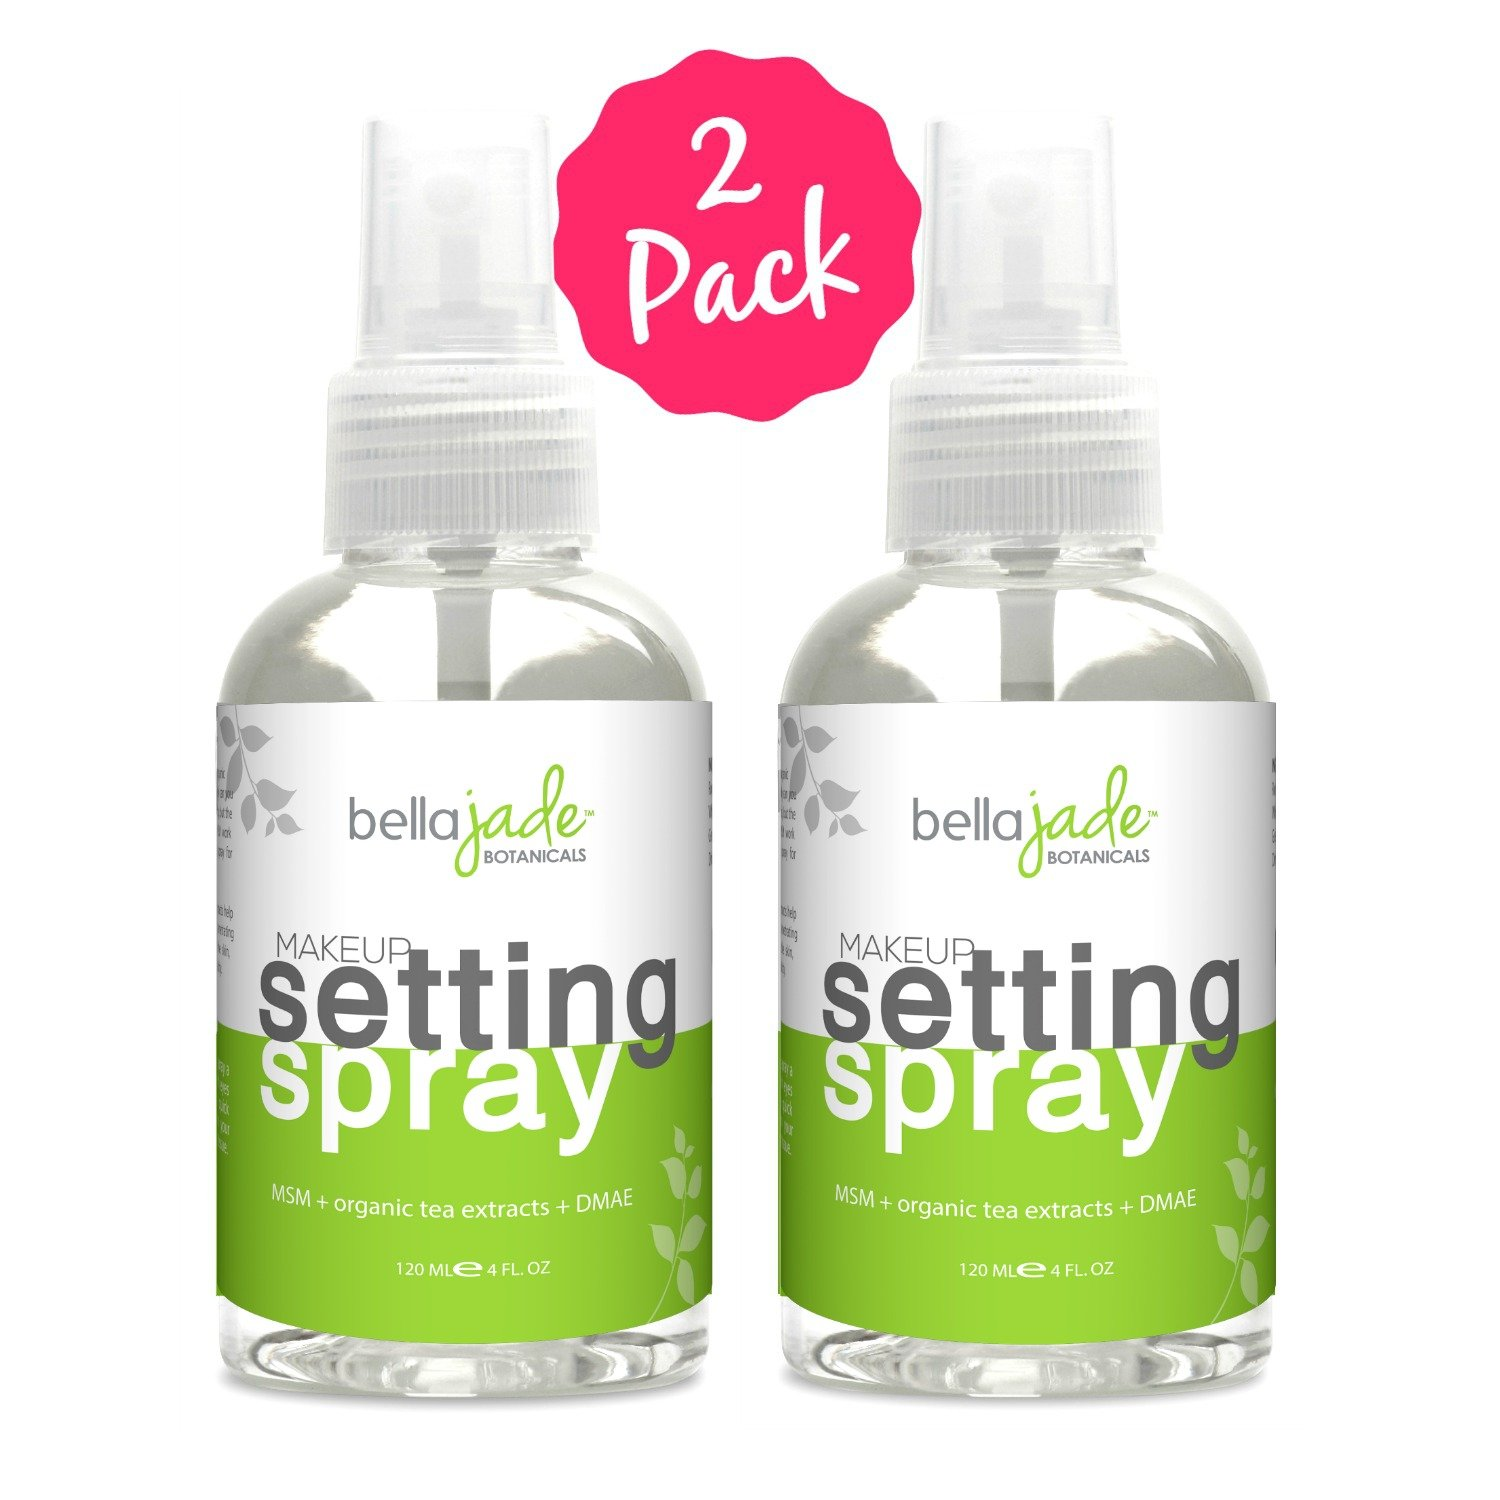 Makeup Setting Spray with Organic Green Tea, MSM and DMAE - A Must for Your Natural Anti Aging Skincare Routine - large 4 ounce bottle (2-Pack)